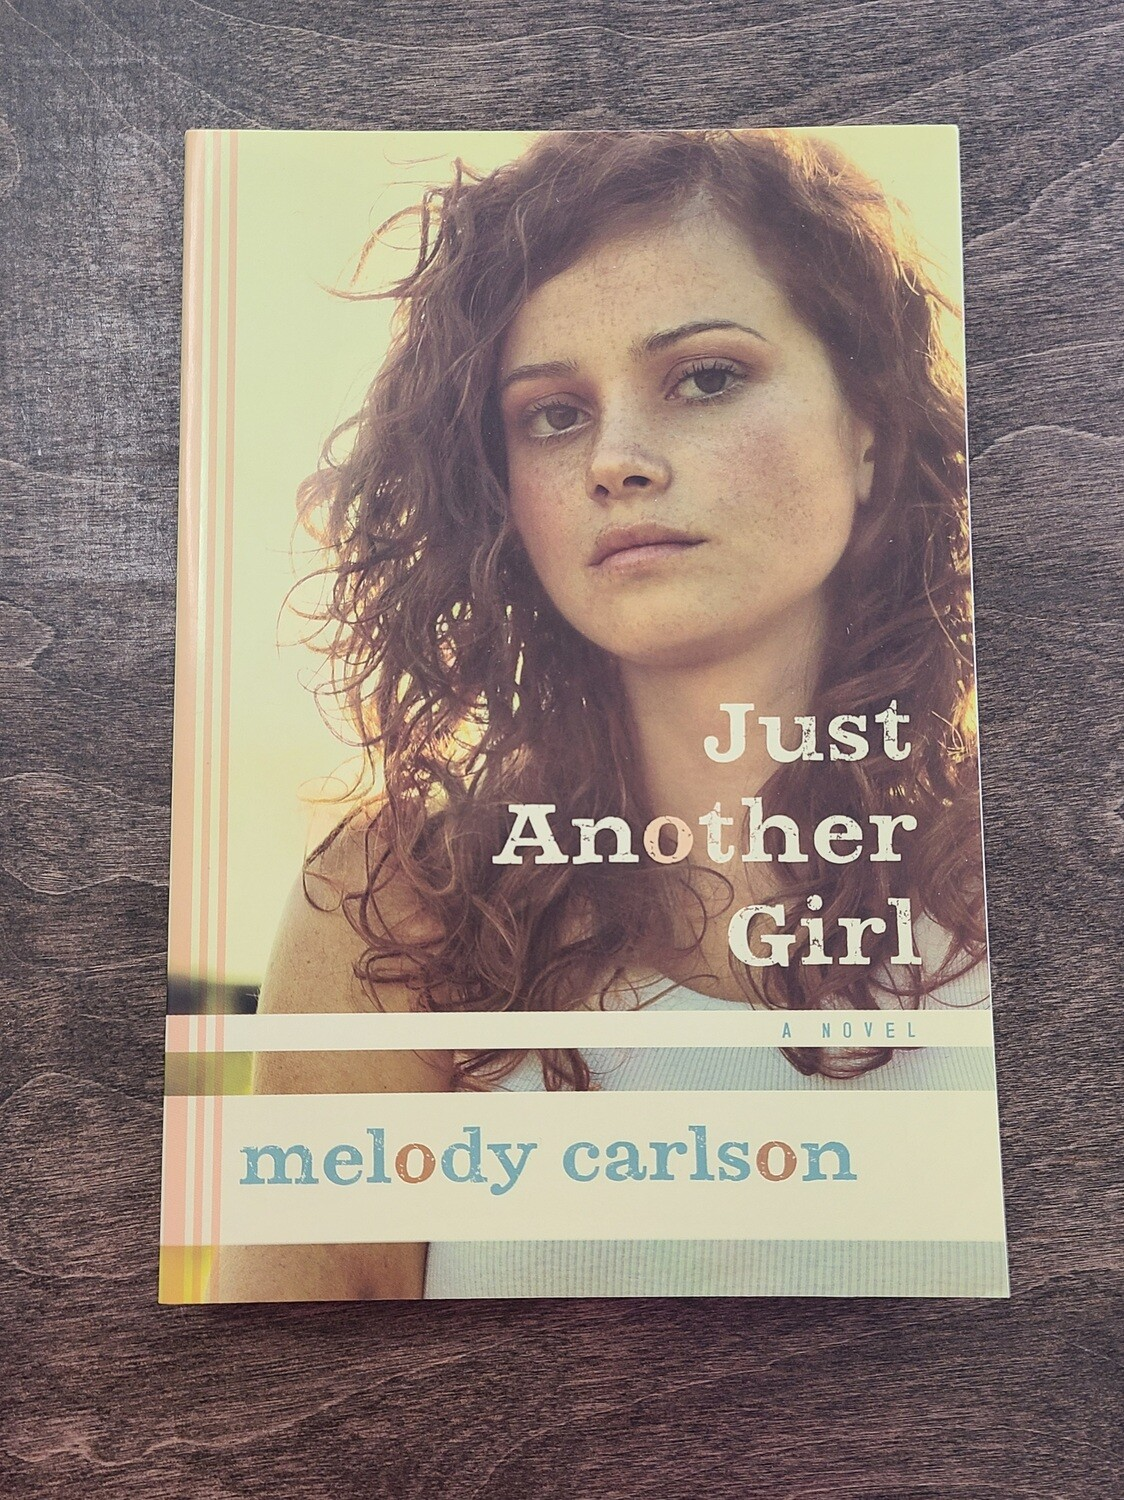 Just Another Girl by Melody Carlson